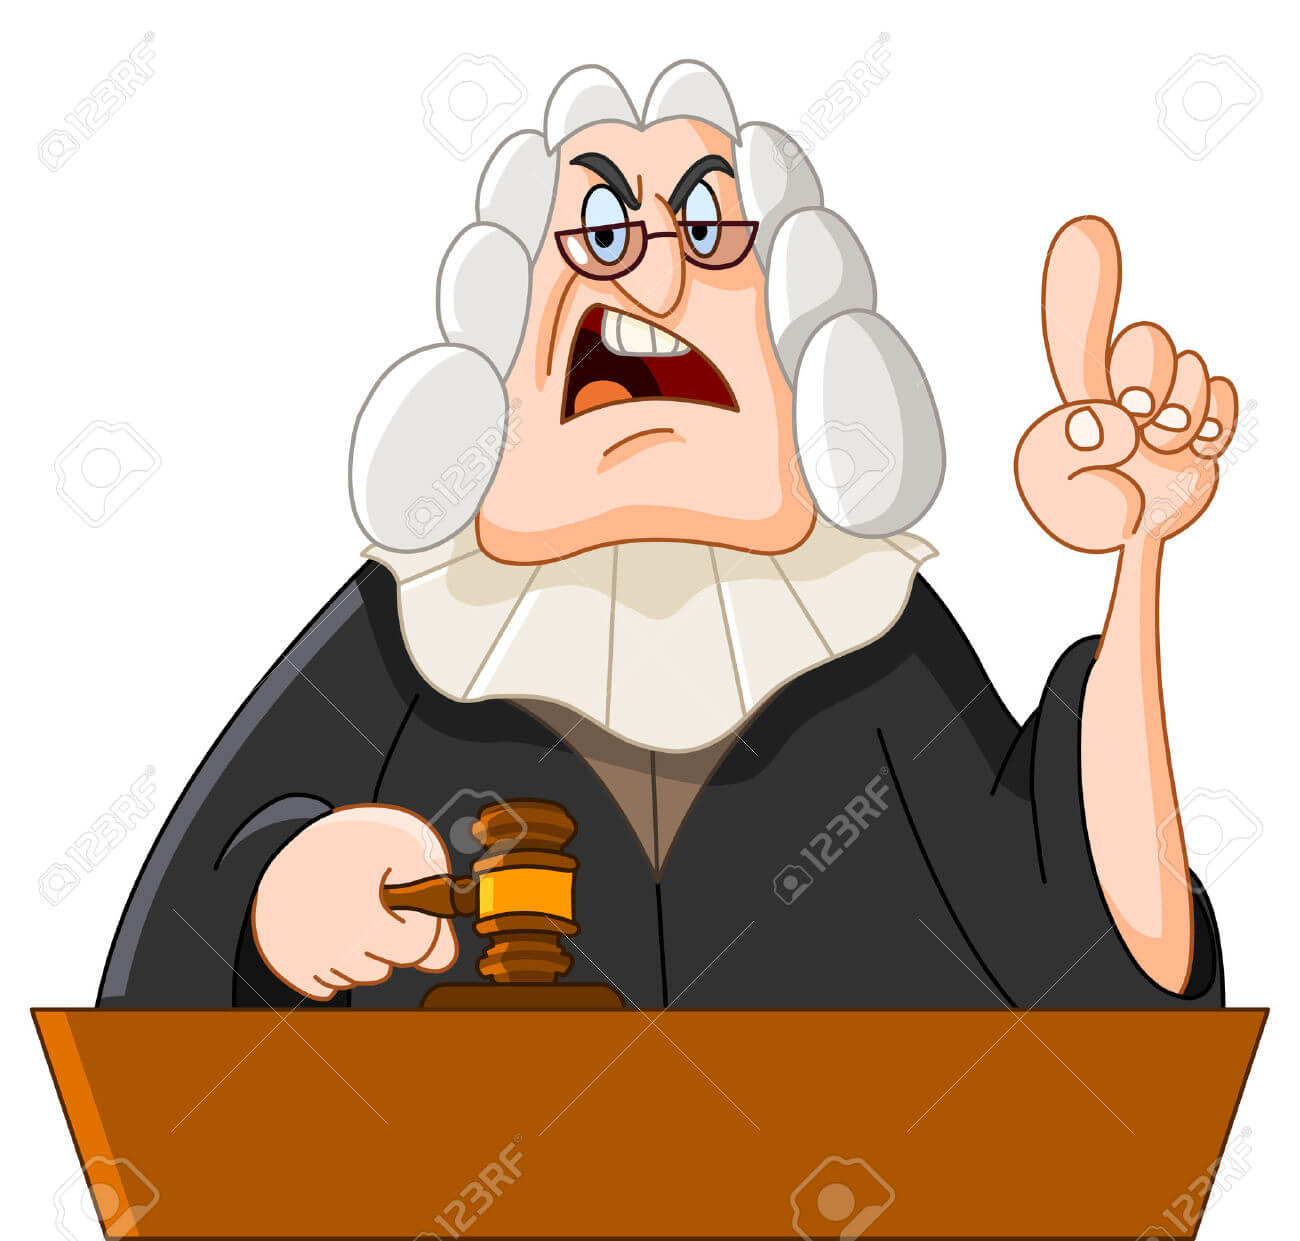 وکیل کیفری  وکیل کیفری 8524816 Judge Stock Vector judge cartoon lawyer 2